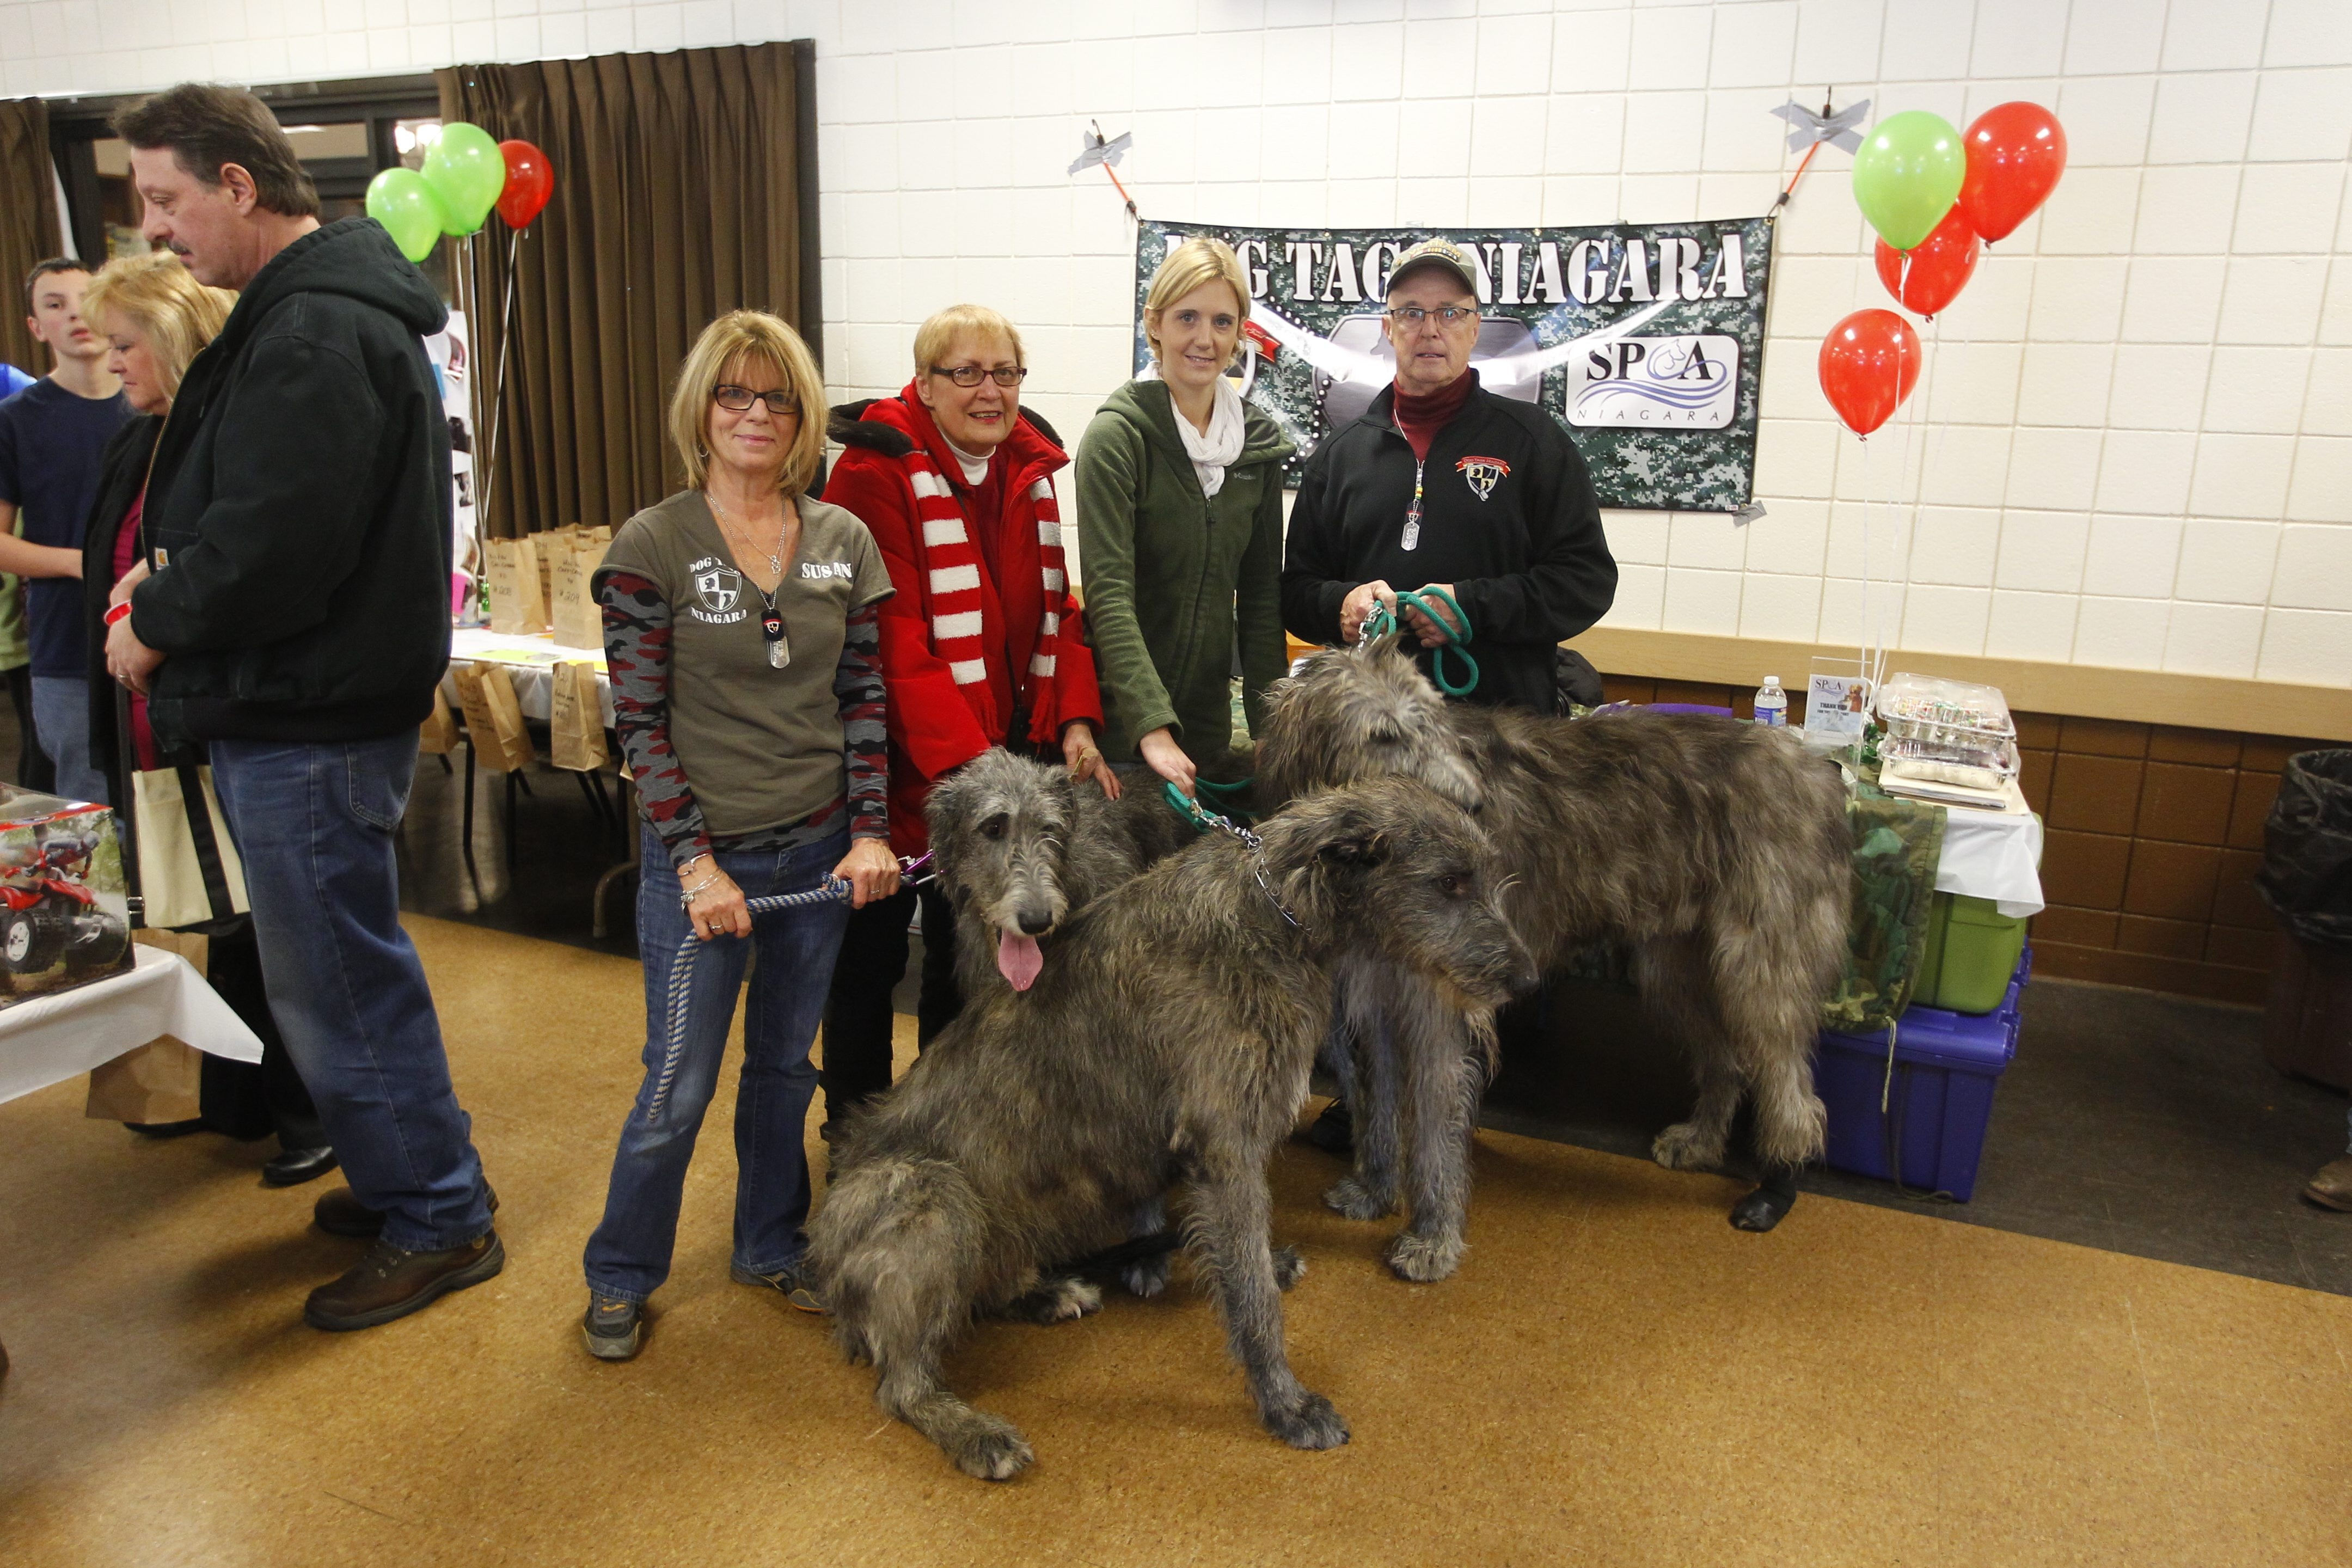 Dog Tags Niagara participants, from left, Susan Alexander, Joyce Odorczyk, Amy Lewis and Joe Ruszala, with Odorczyk's Irish wolfhounds Dulan, Gallagher, and Bellehaven at the Elks Lodge, 1805 Fashion Outlet Blvd., Niagara Falls.